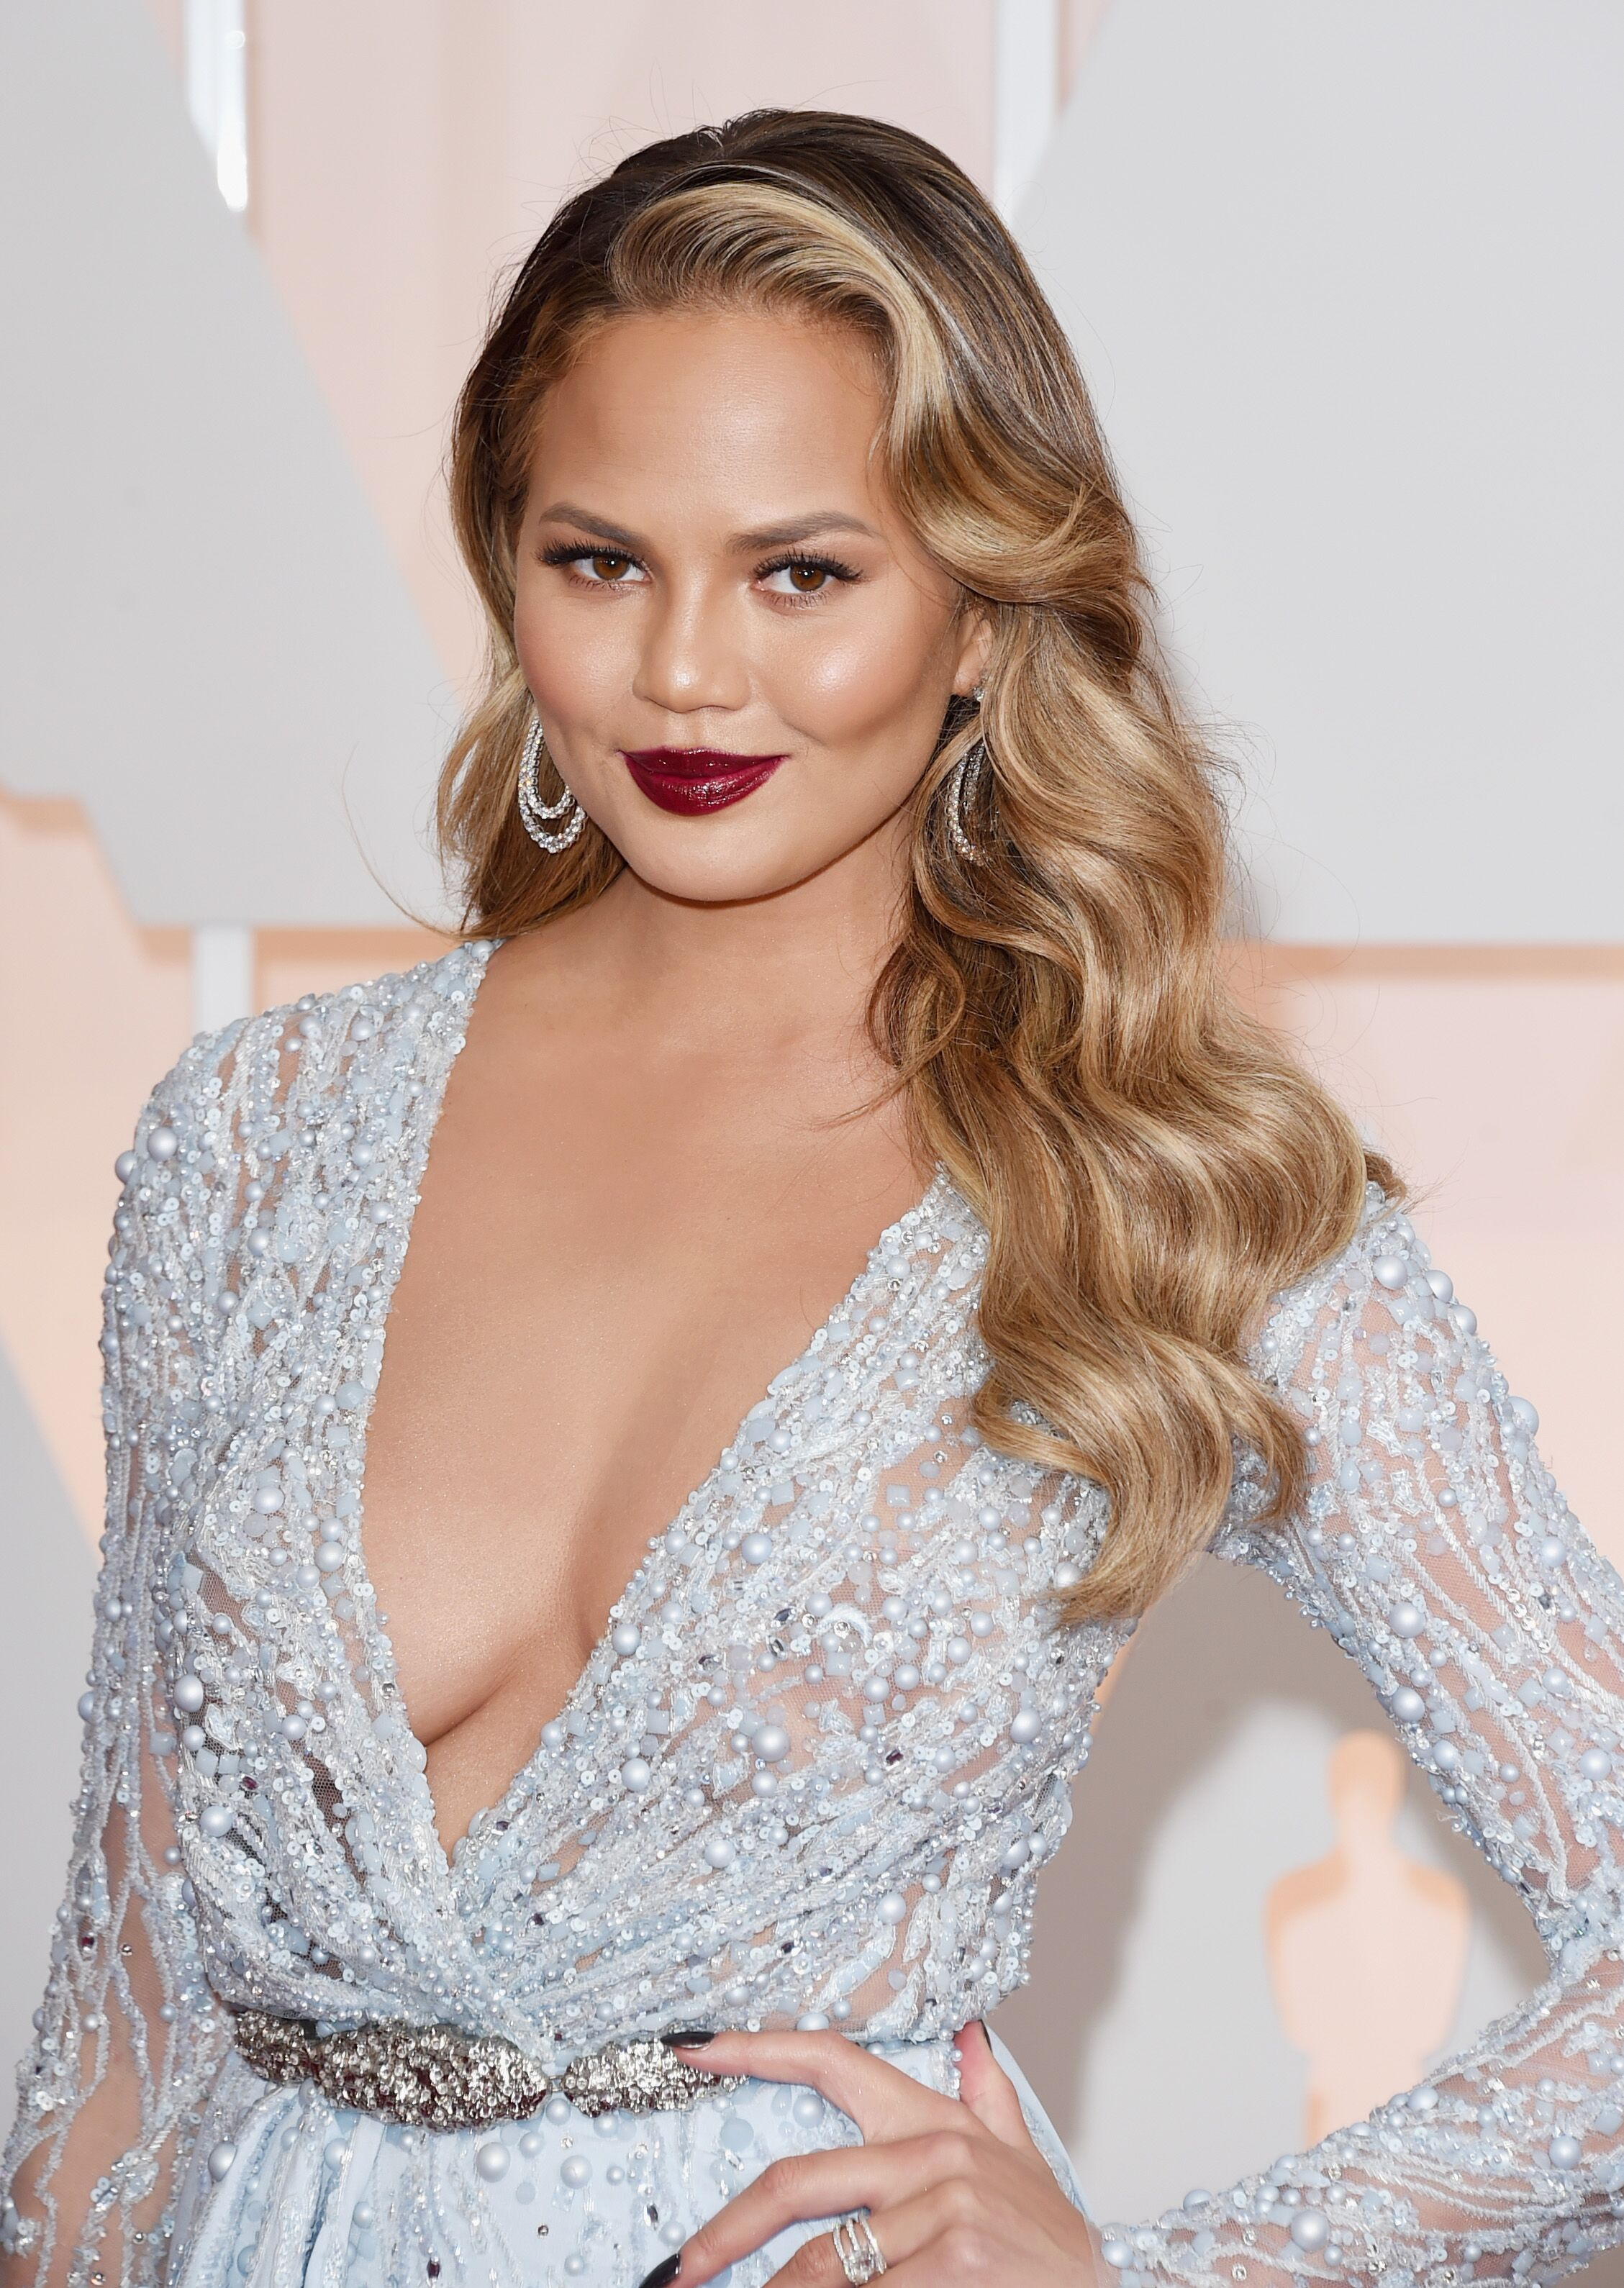 Chrissy Teigen at the  CFDA Fashion Awards/ Source: Getty Images